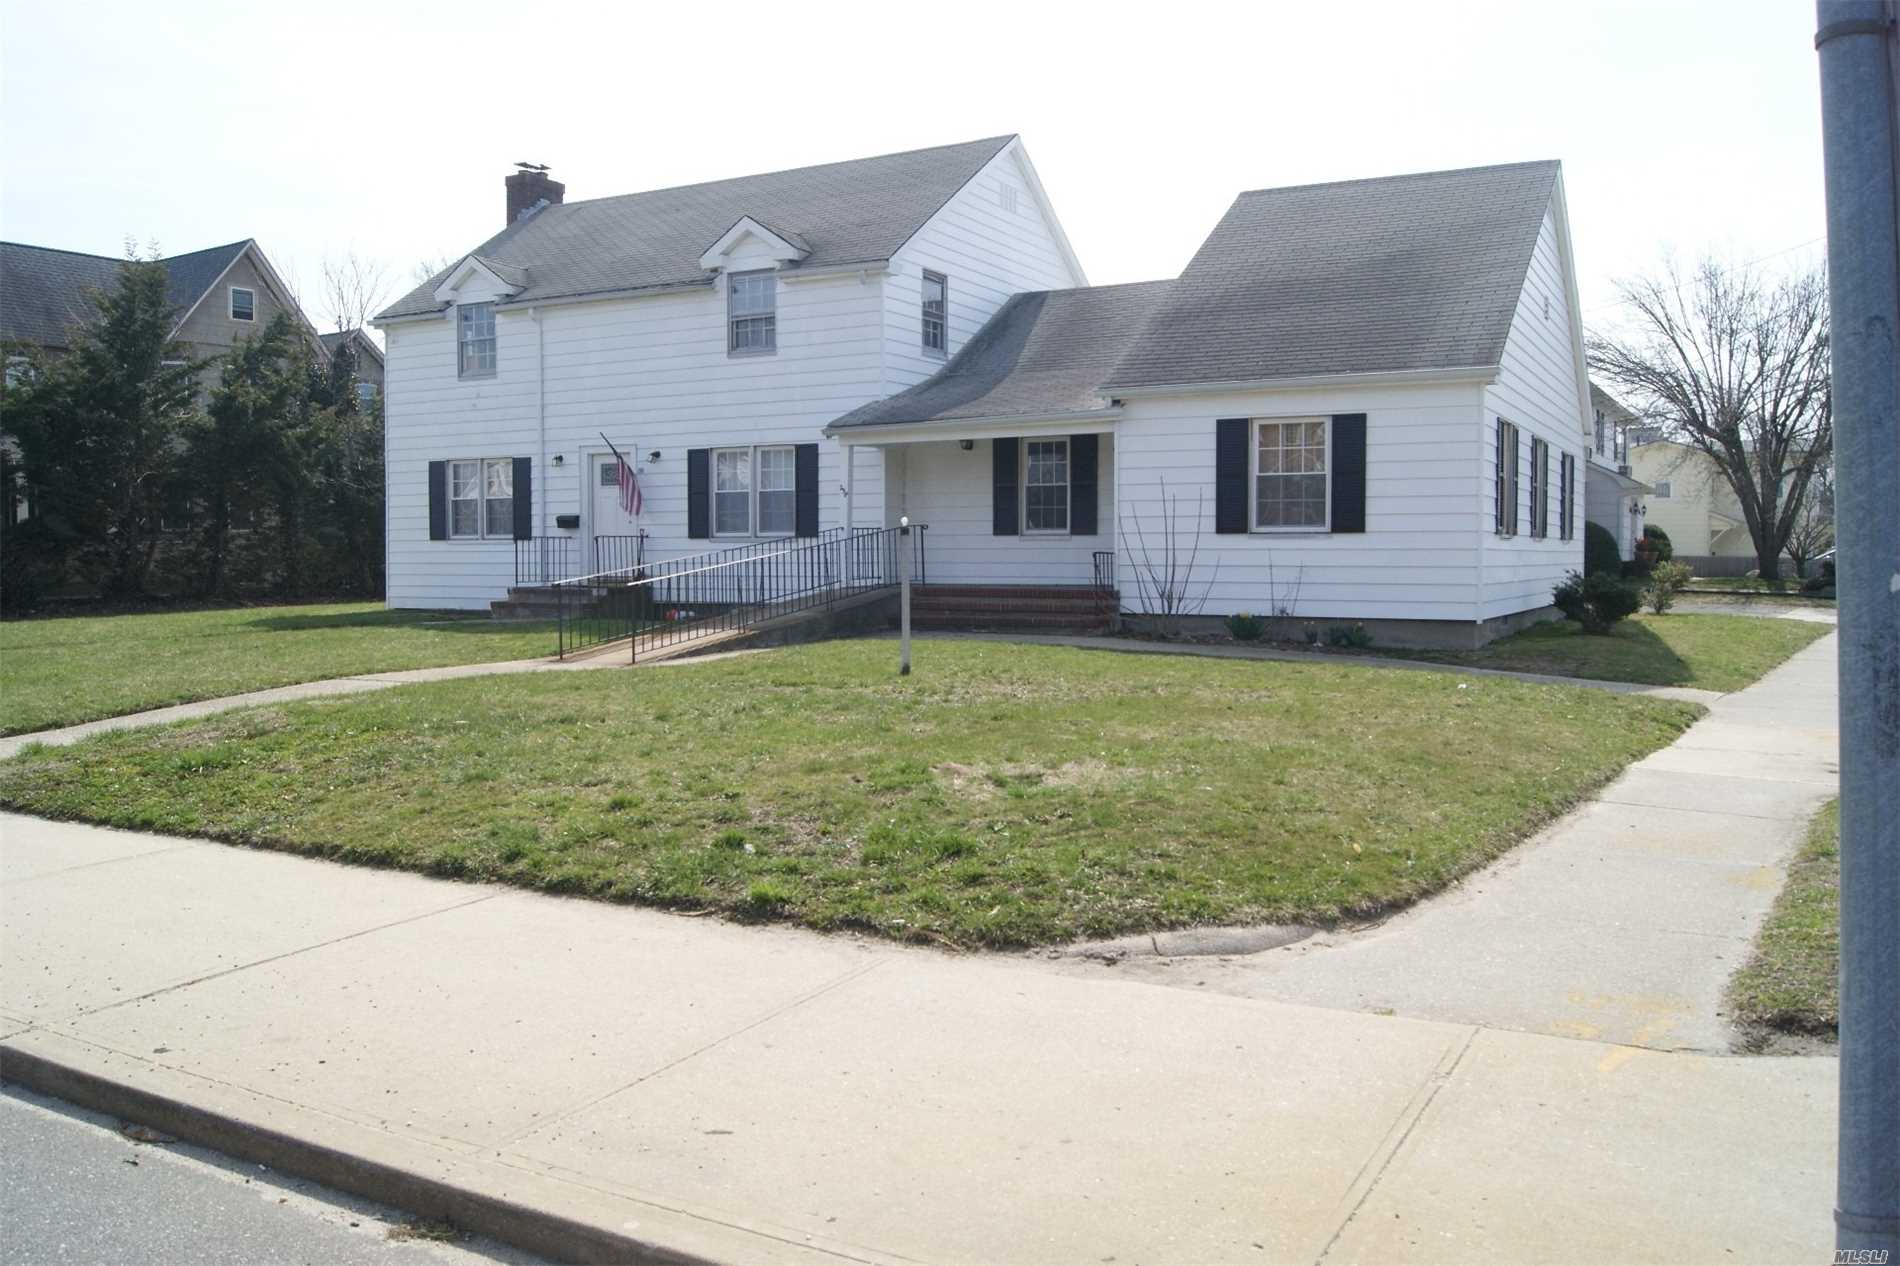 258 S Ocean Ave - Patchogue, New York